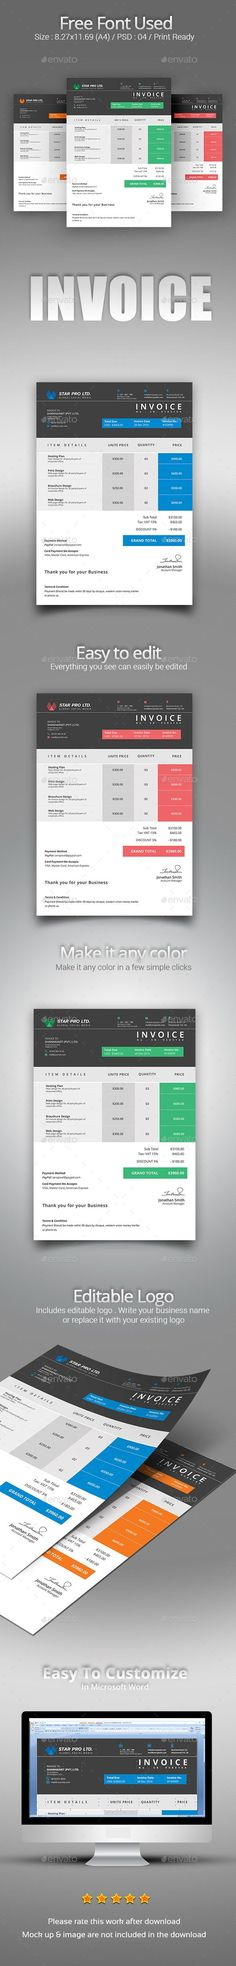 Invoice With Letterhead Bundle Ai illustrator, Template and - letterheads templates free download